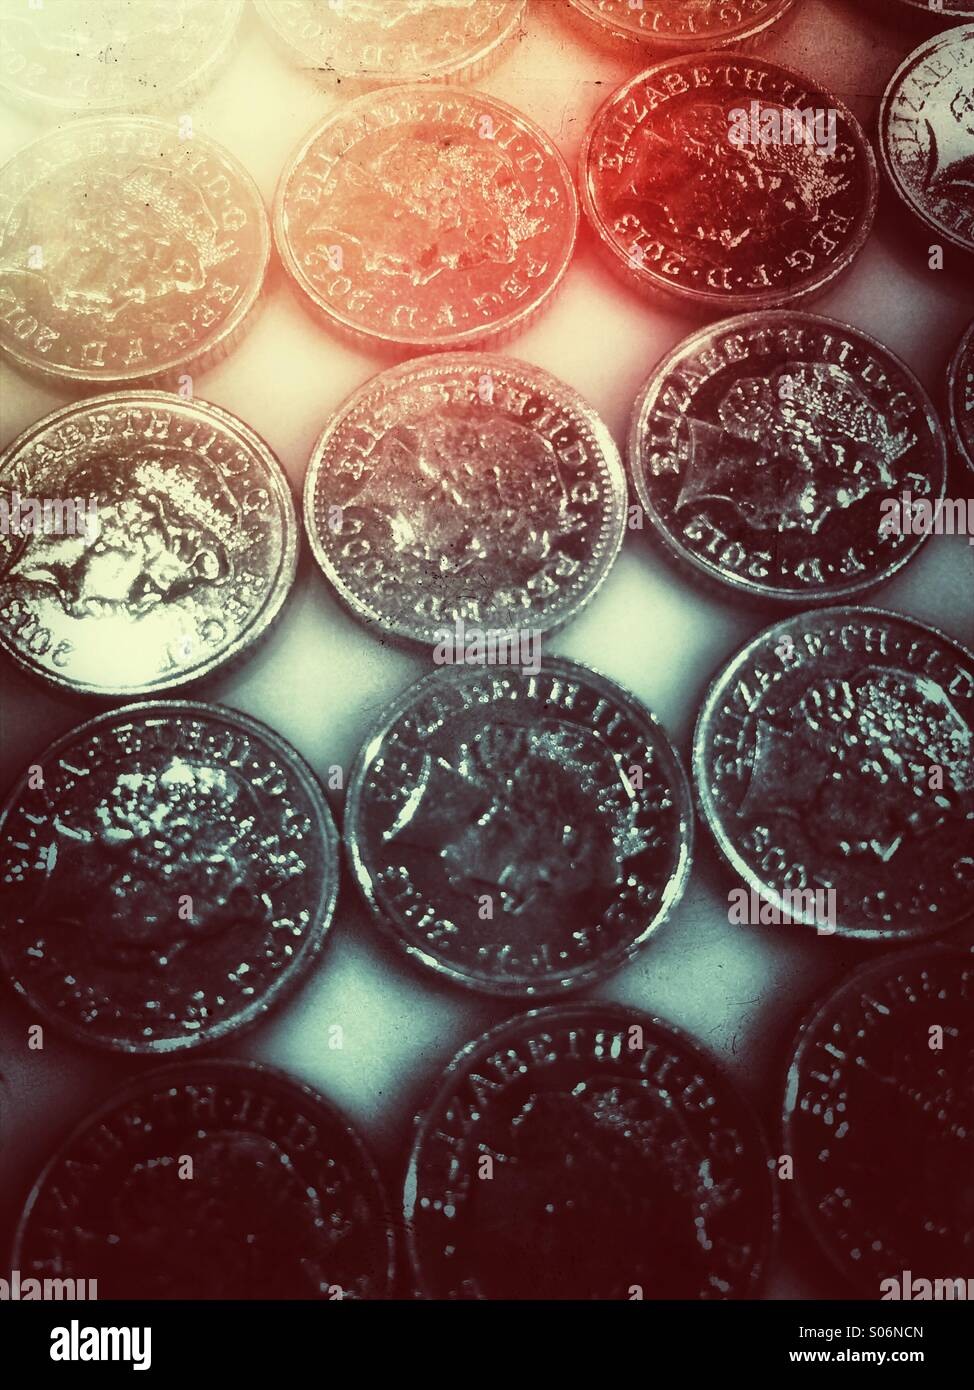 Coins - Stock Image